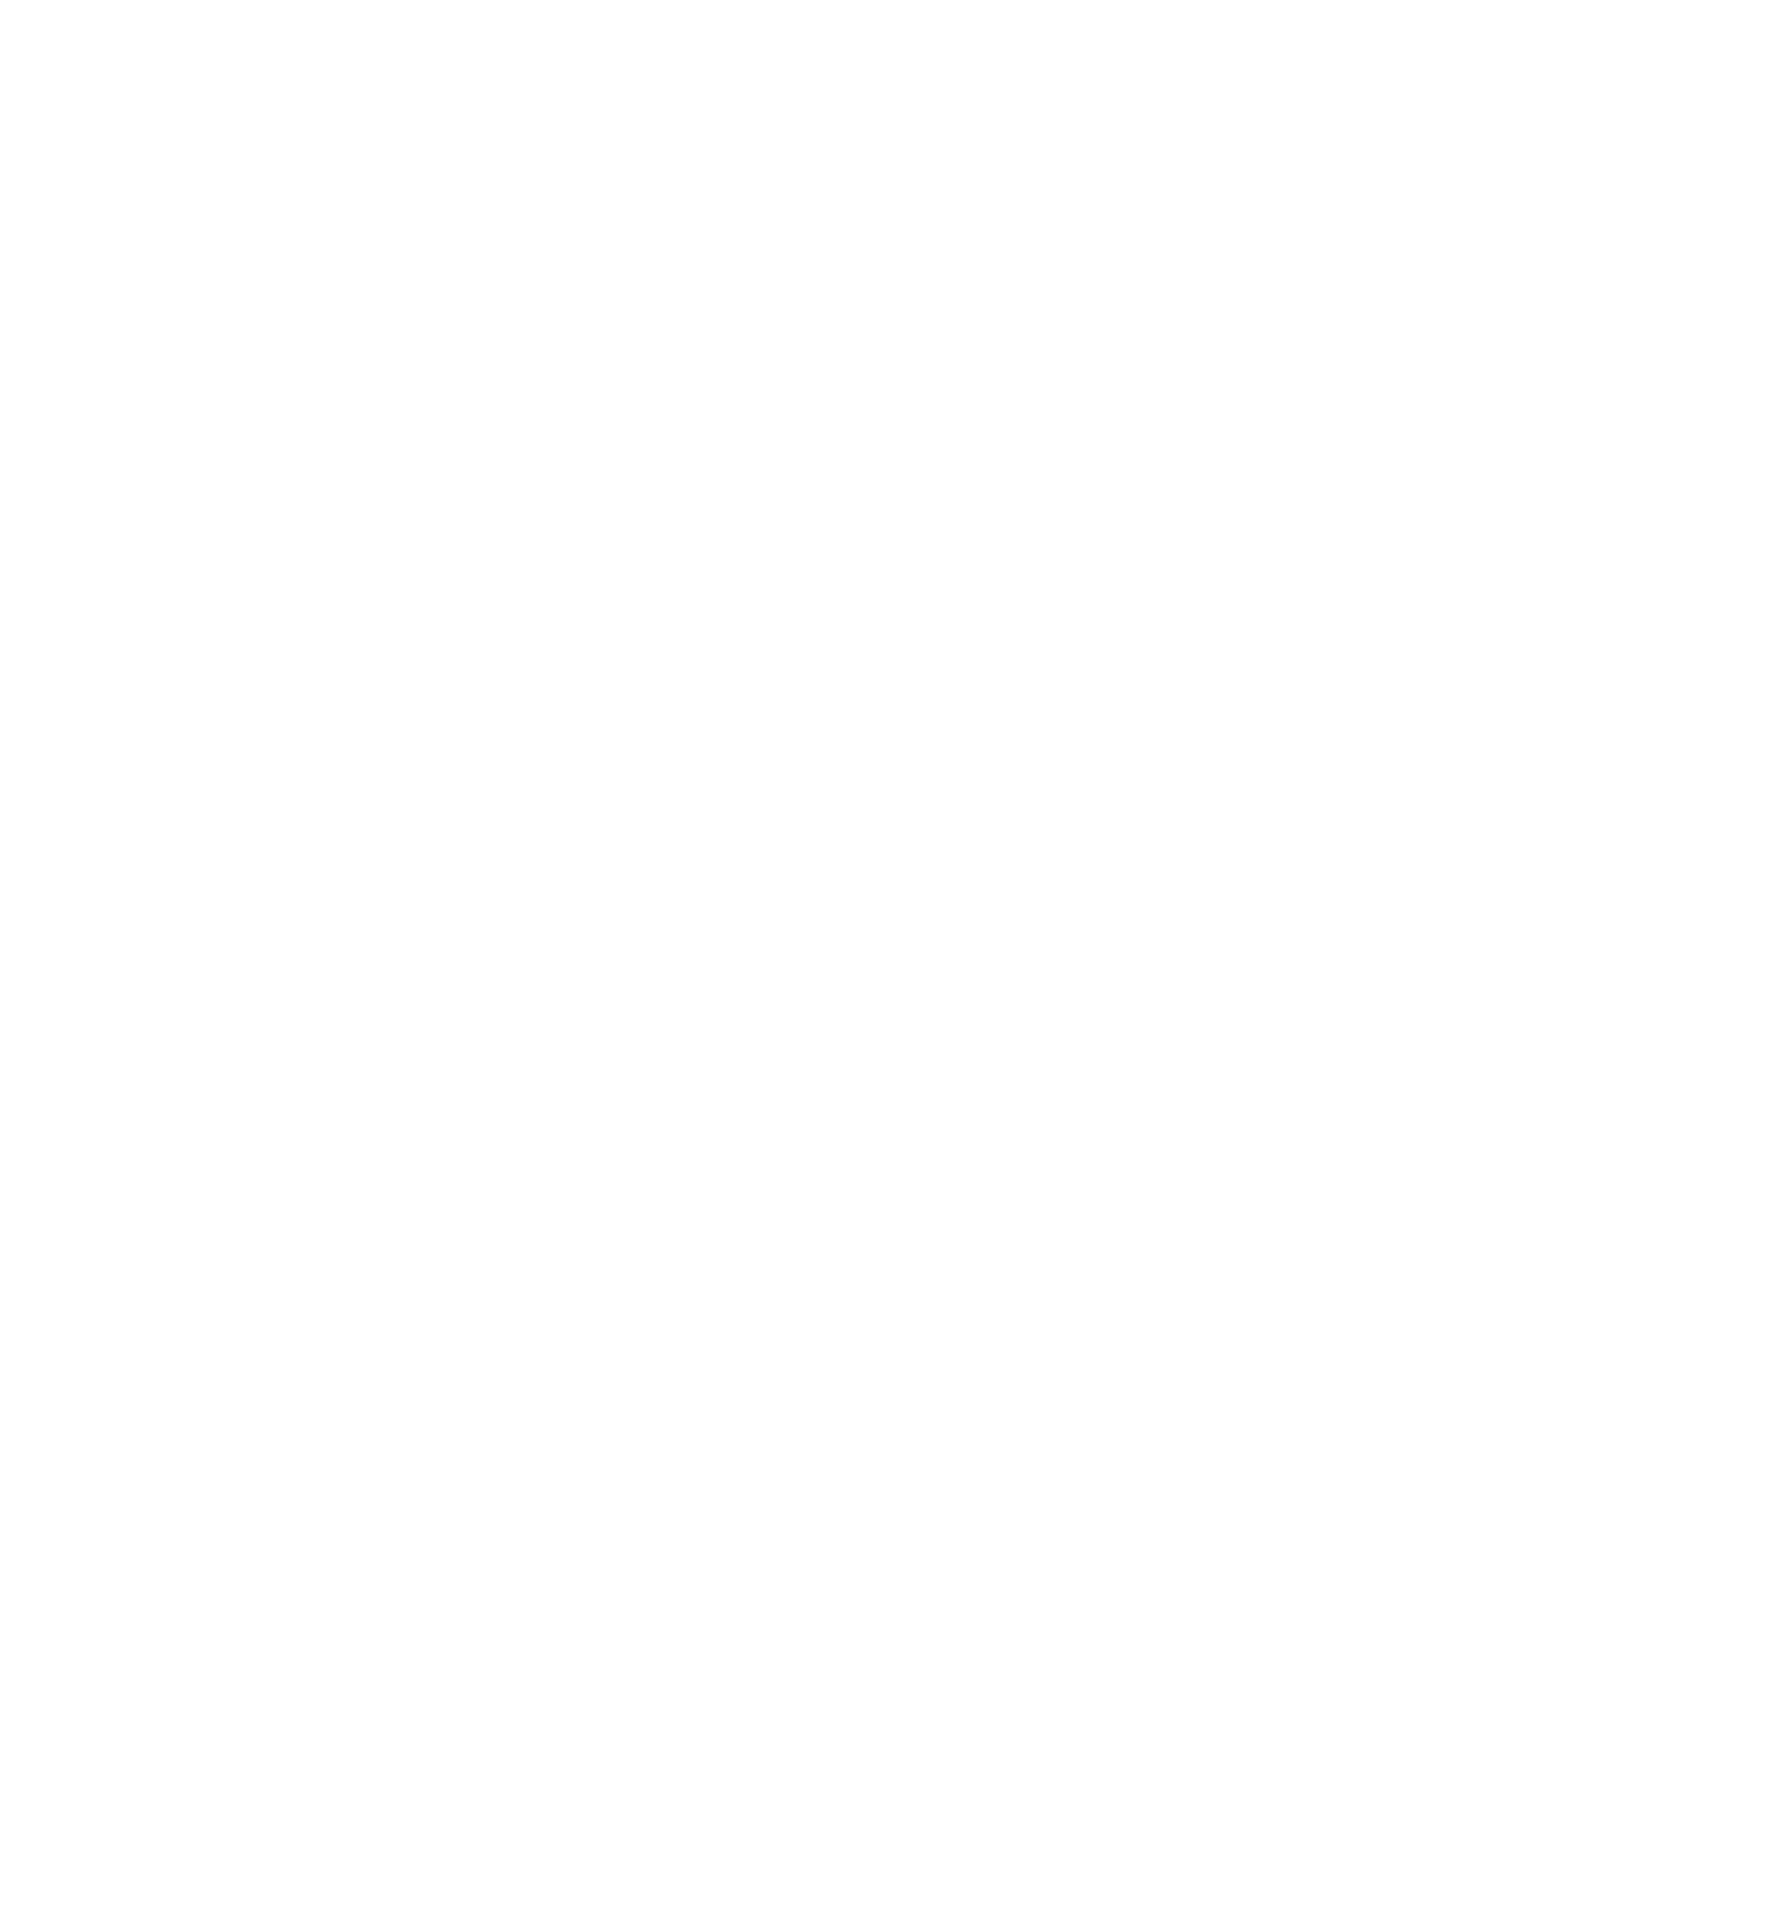 THE GURU OF ABS